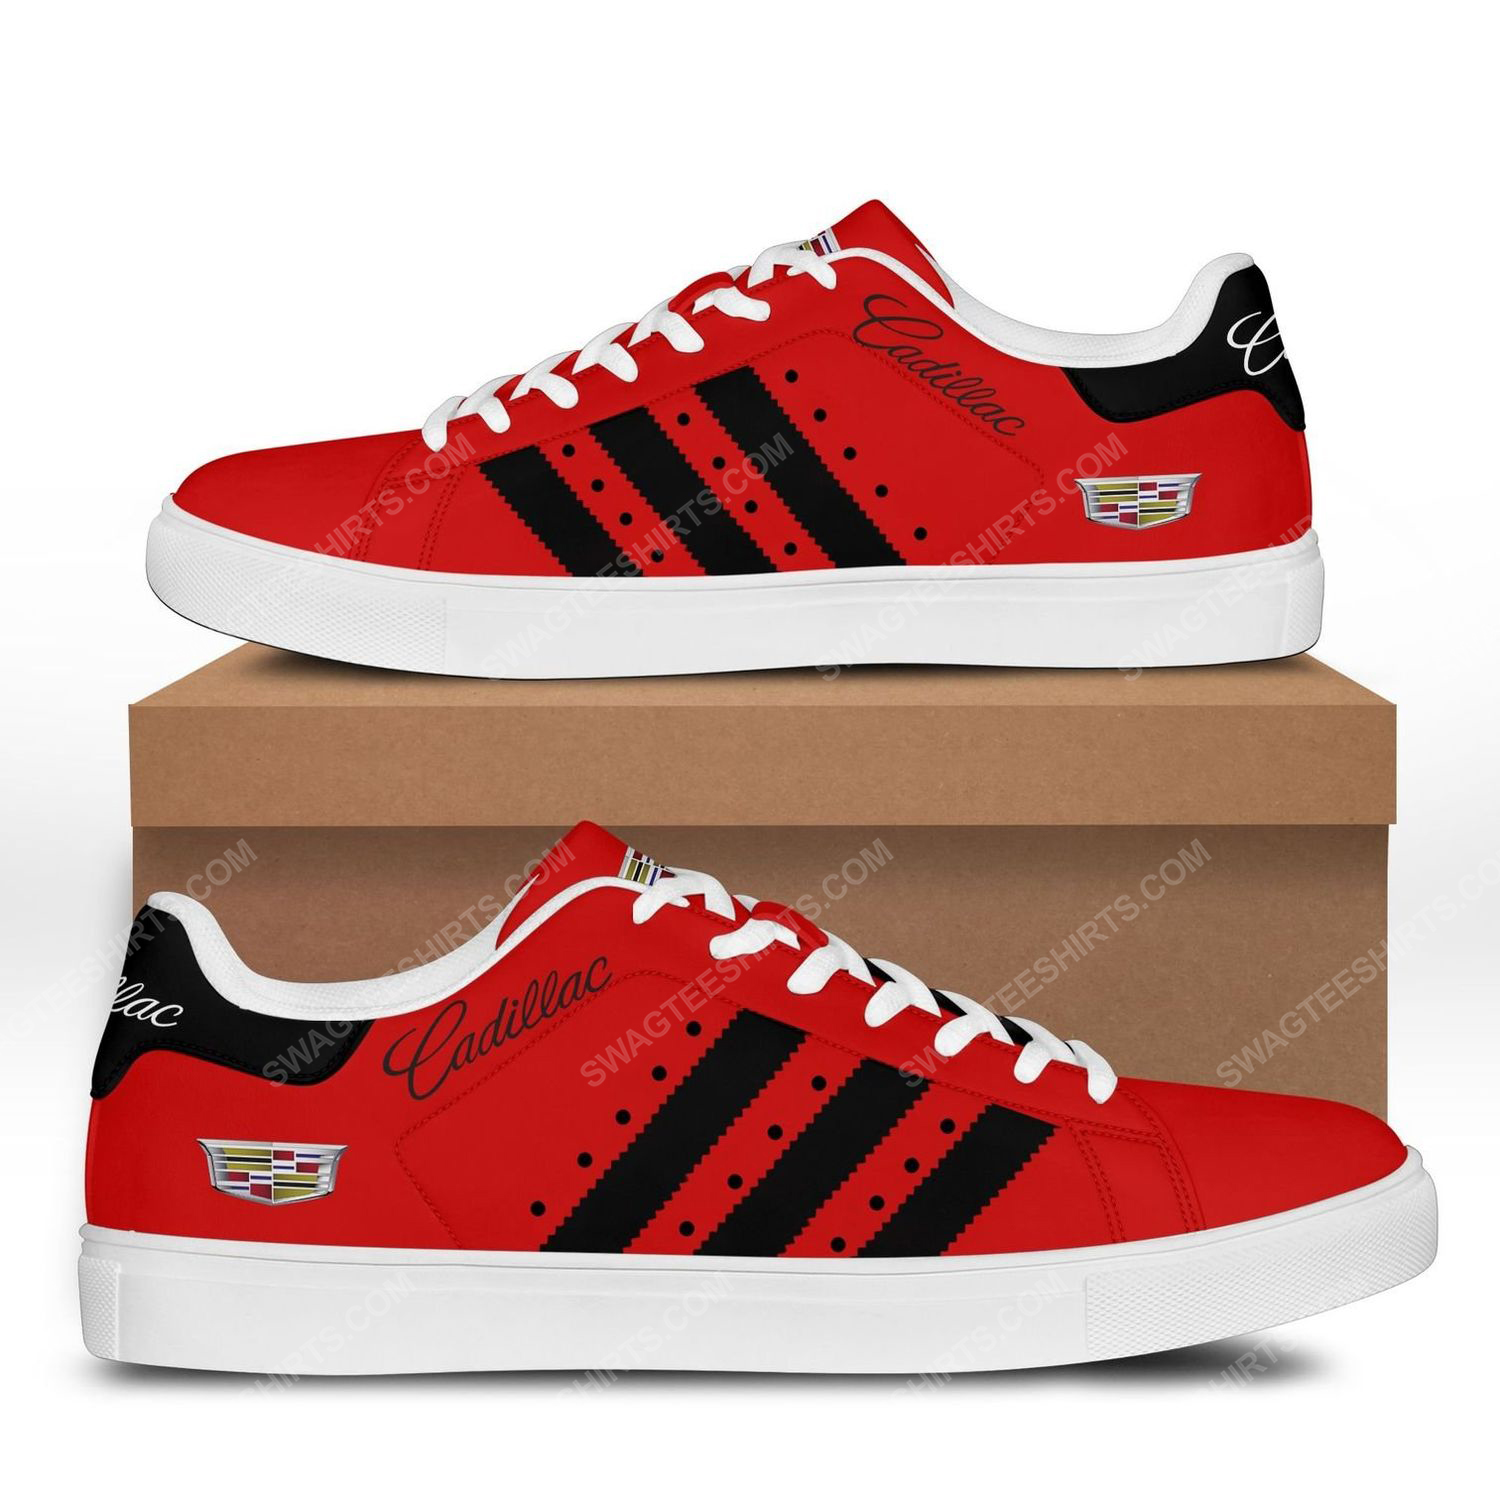 Cadillac car version red stan smith shoes 1